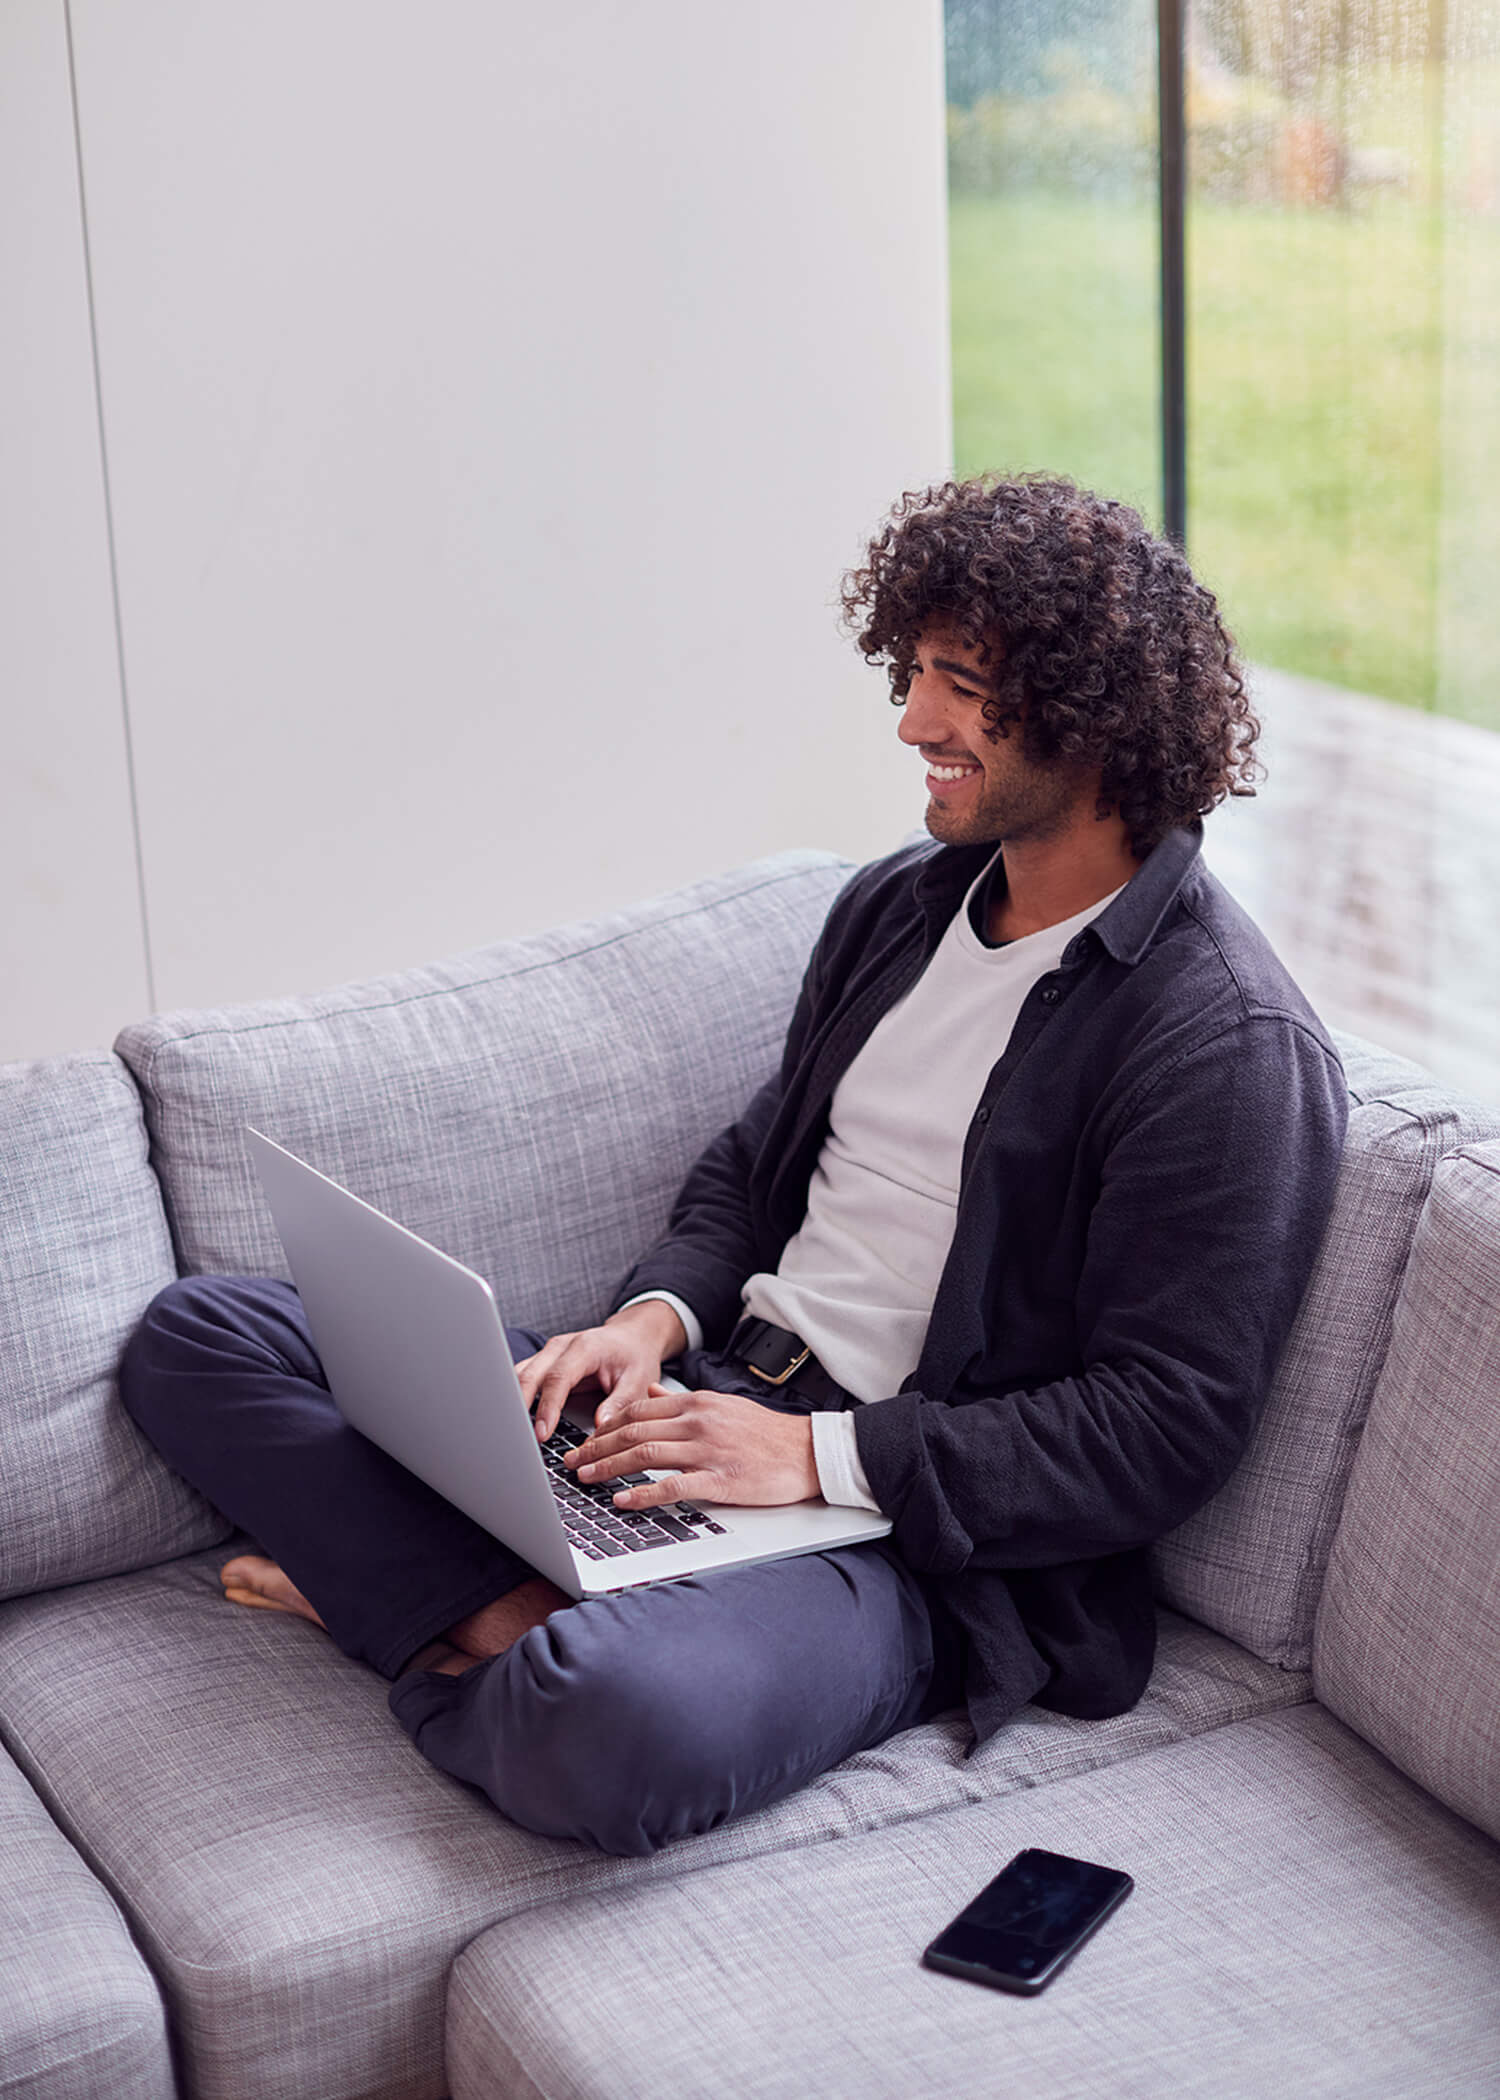 Image of a man sitting on a couch using a laptop and smiling. This image represents what it could look like for you to meet with an online DBT therapist in California. The DBT Center uses online therapy in California to serve people in need of online DBT therapy in California. | 90277 | 90254